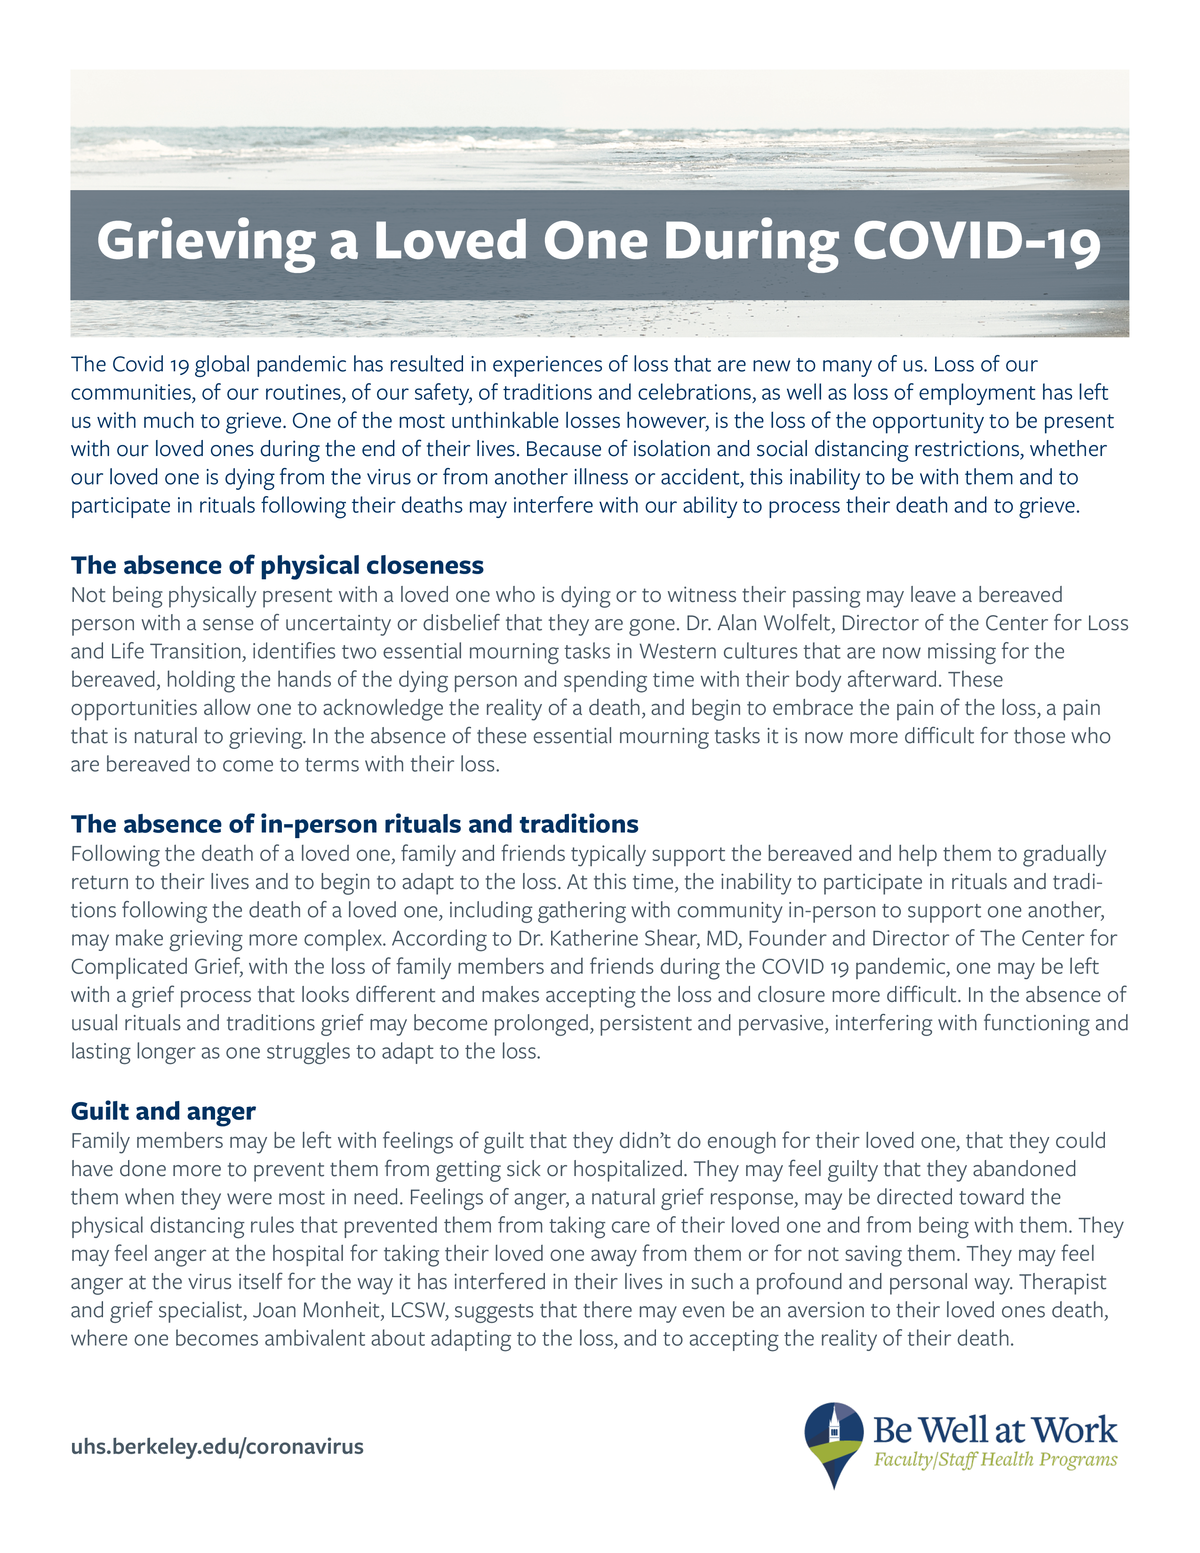 Grieving for a Loved One during Covid-19 handout